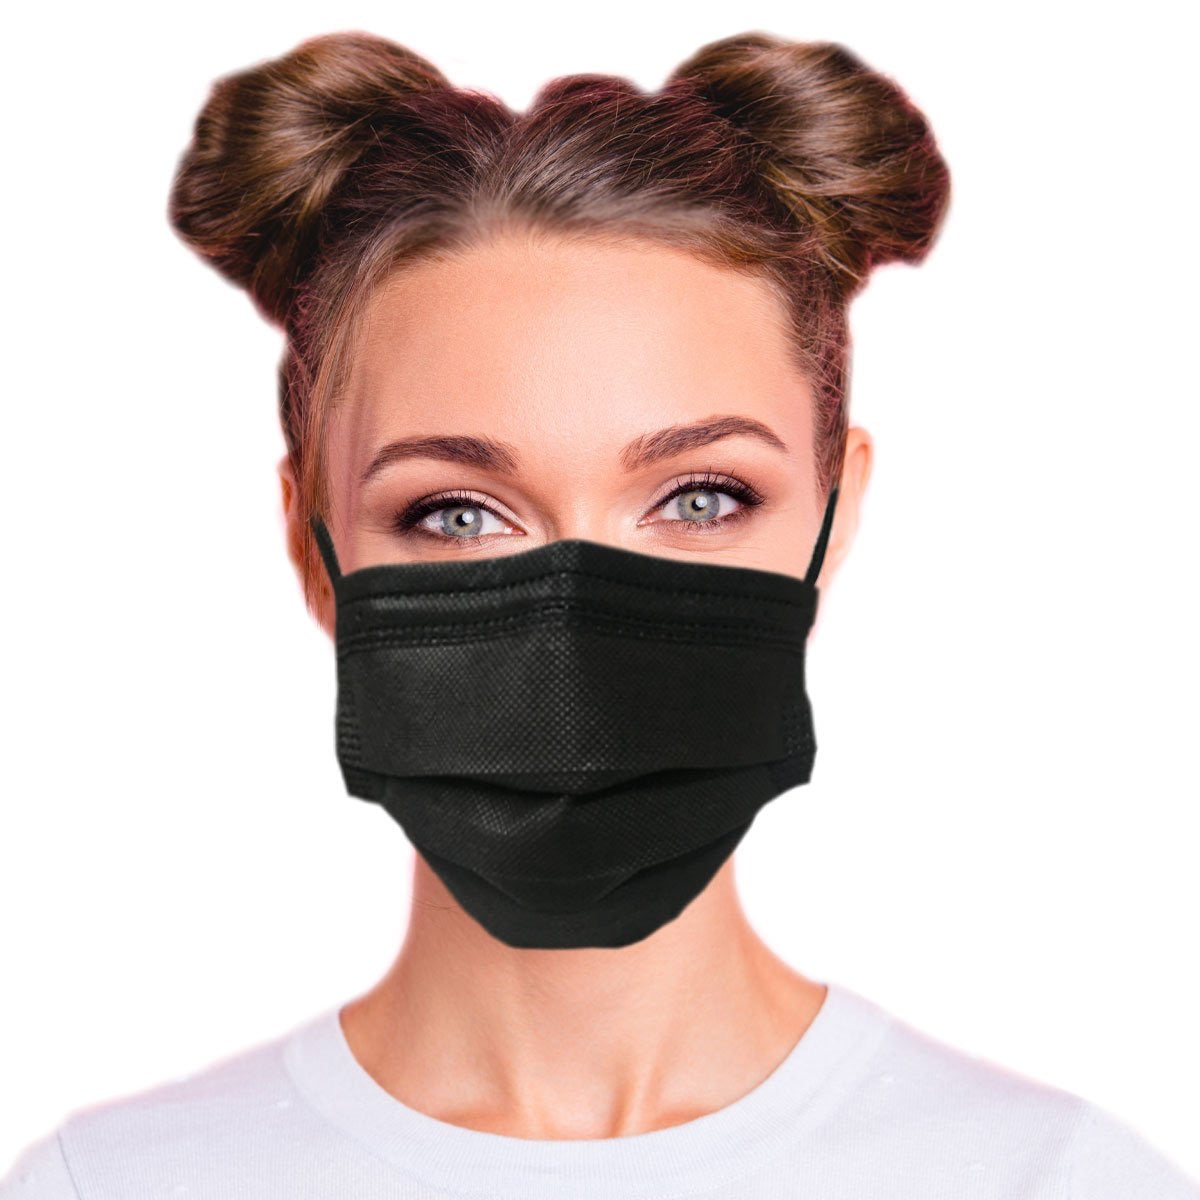 Black Disposable Face Cover 3-Ply Filter Non Medical Breathable Masks - 50 Pcs